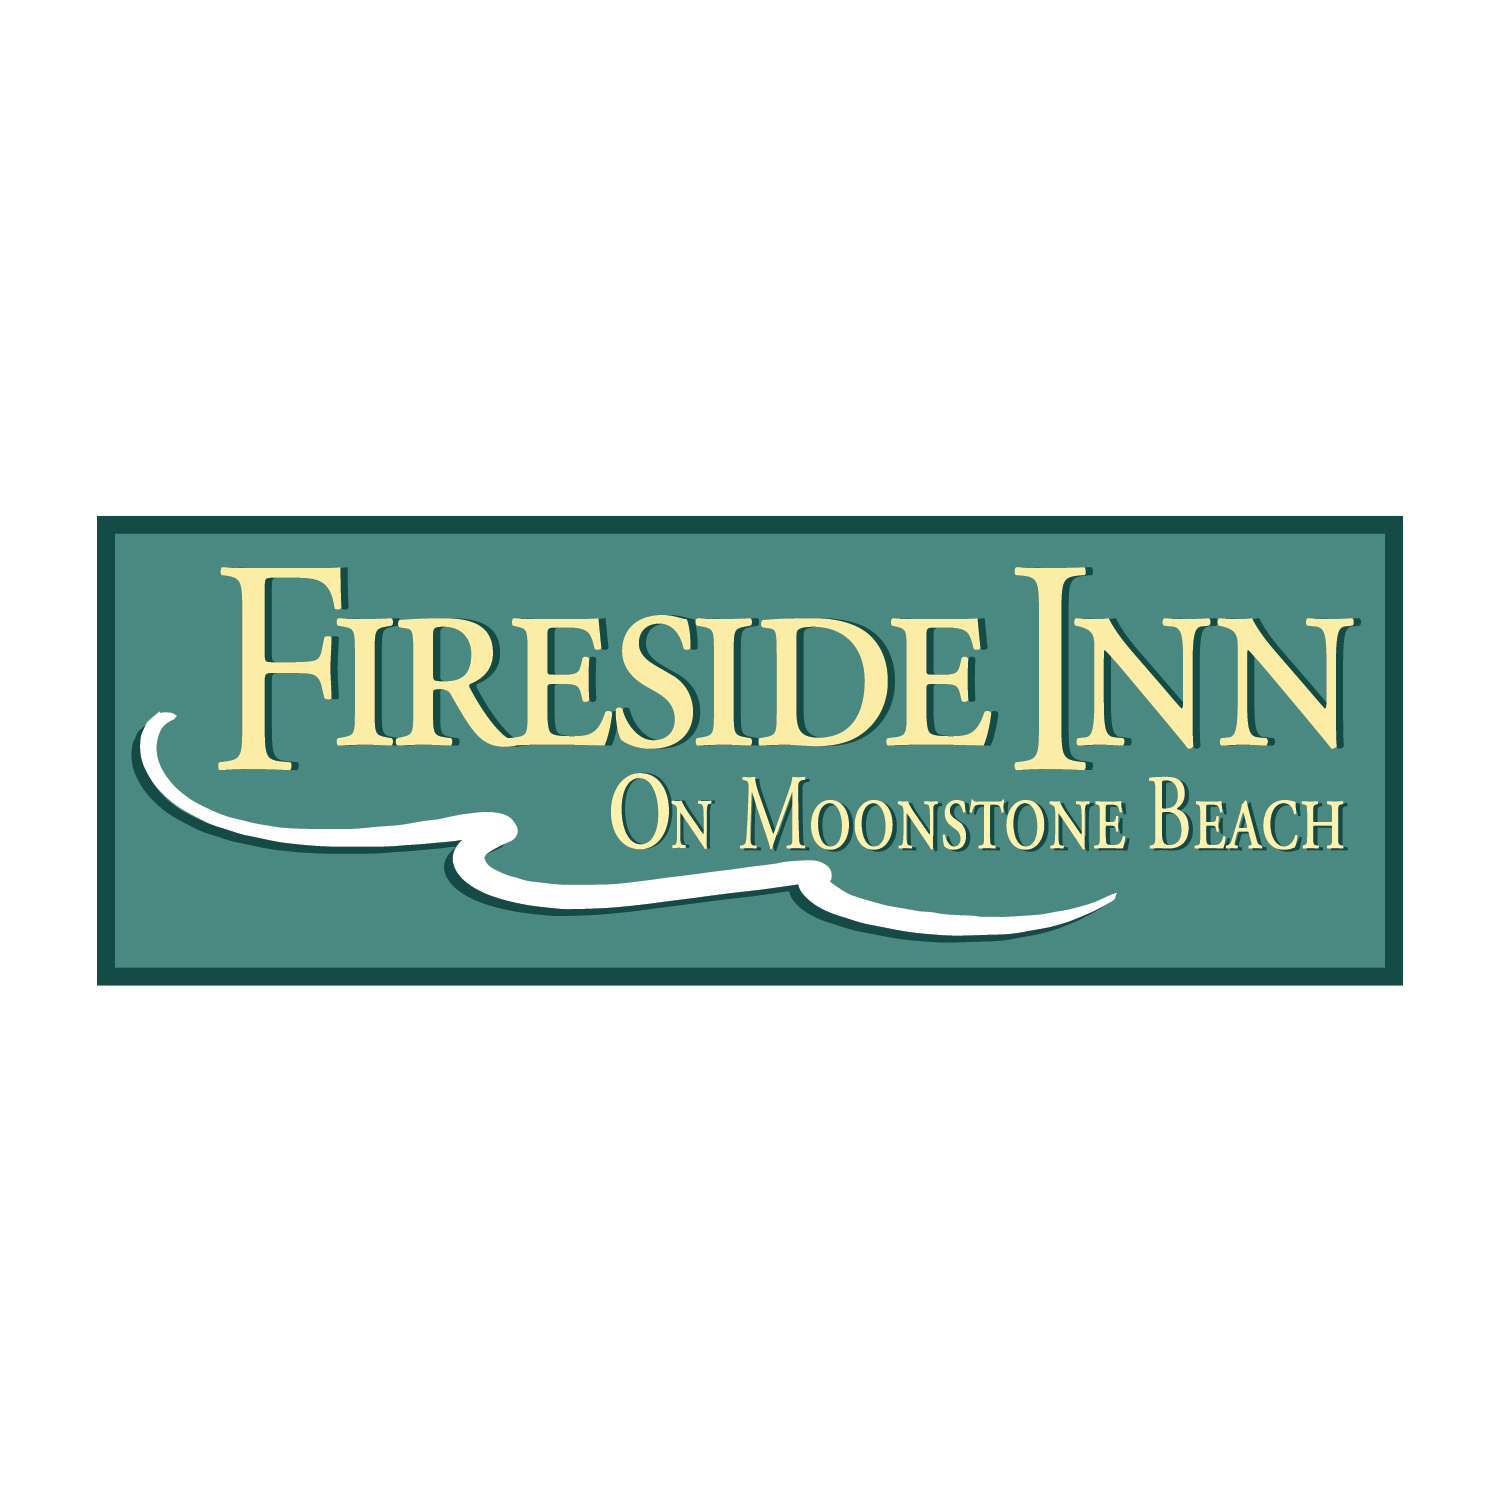 Fireside Inn on Moonstone Beach